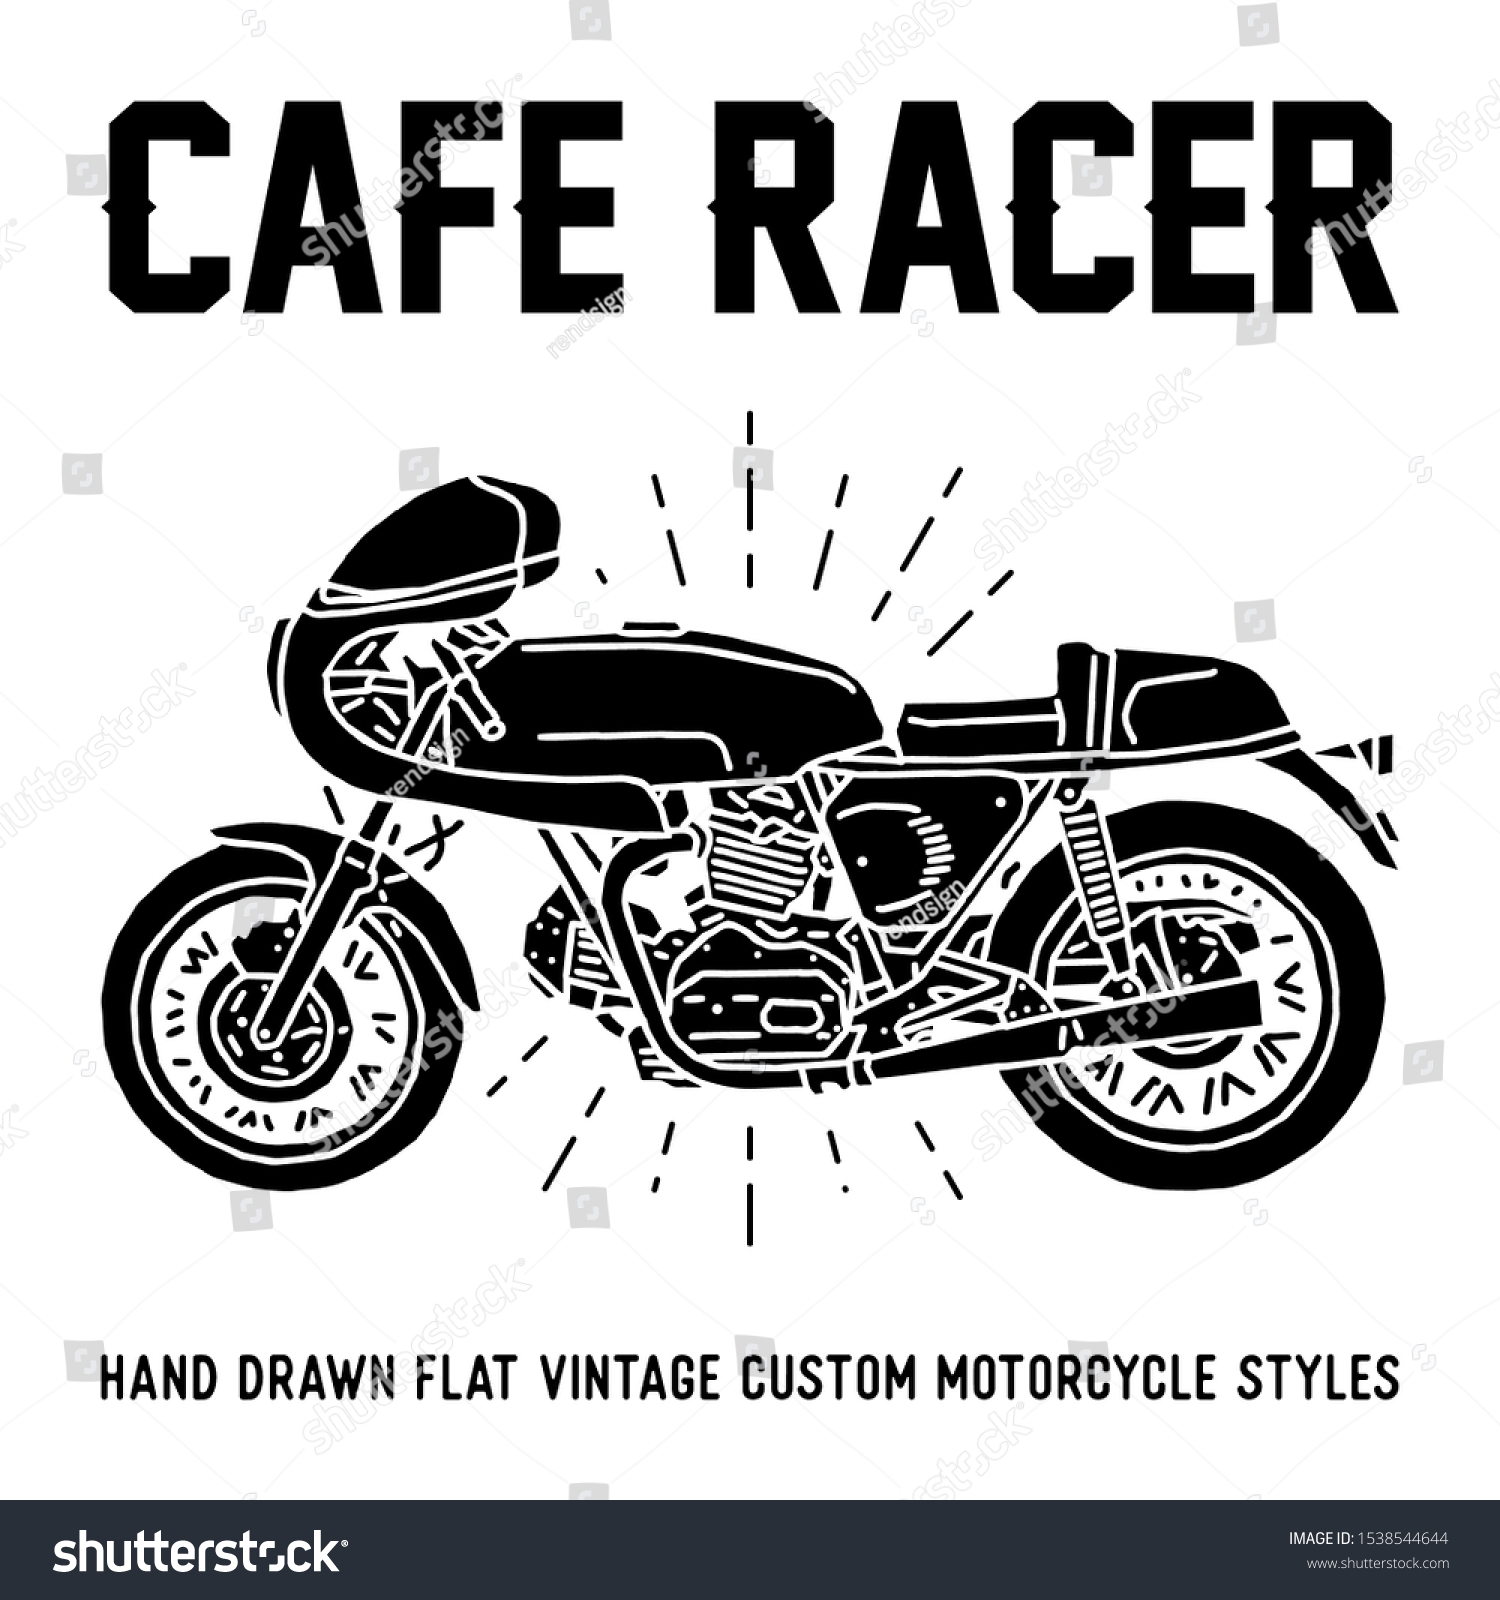 Hand Drawn Cafe Racer Series Vintage Custom Motorcycle Flat Design Ray Lights